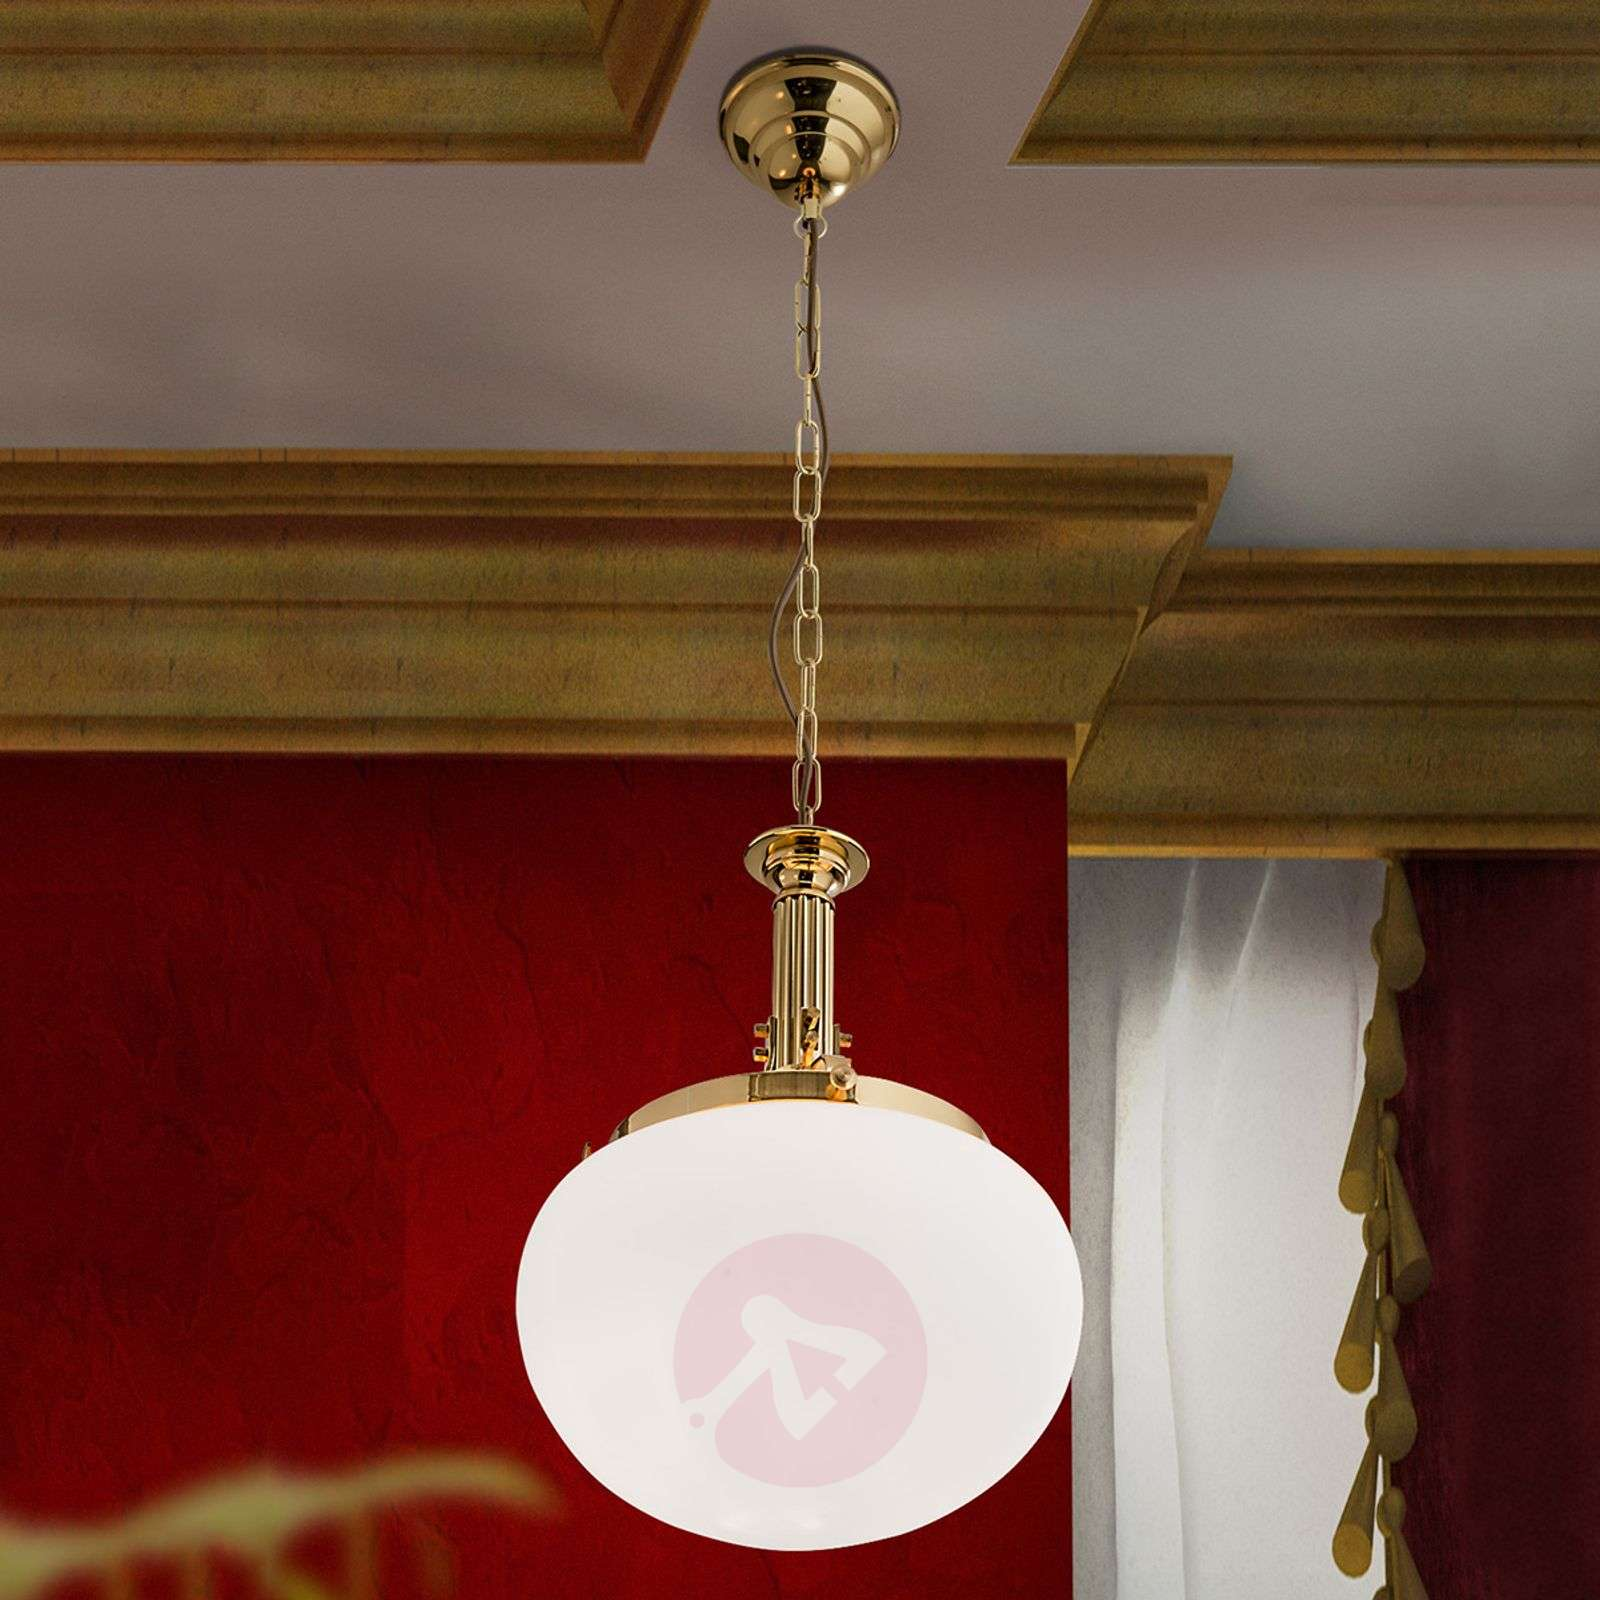 Delia Hanging Light Single Bulb Brass-7254018-01